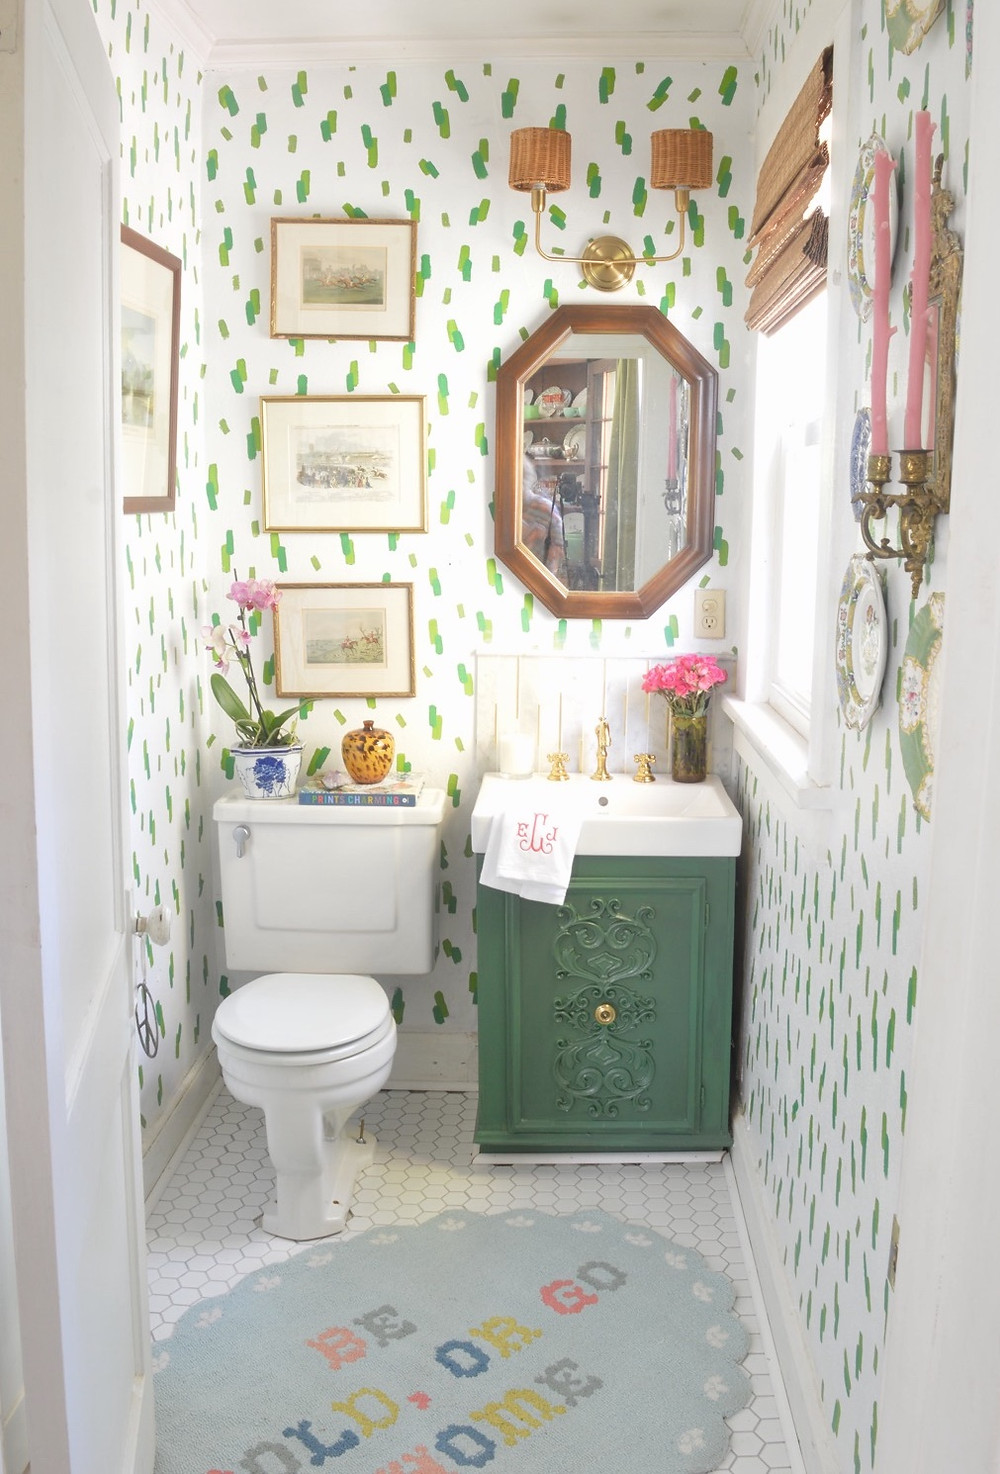 interior design, DIY, One Room Challenge, powder room renovation, grandmillennial style, traditional home style